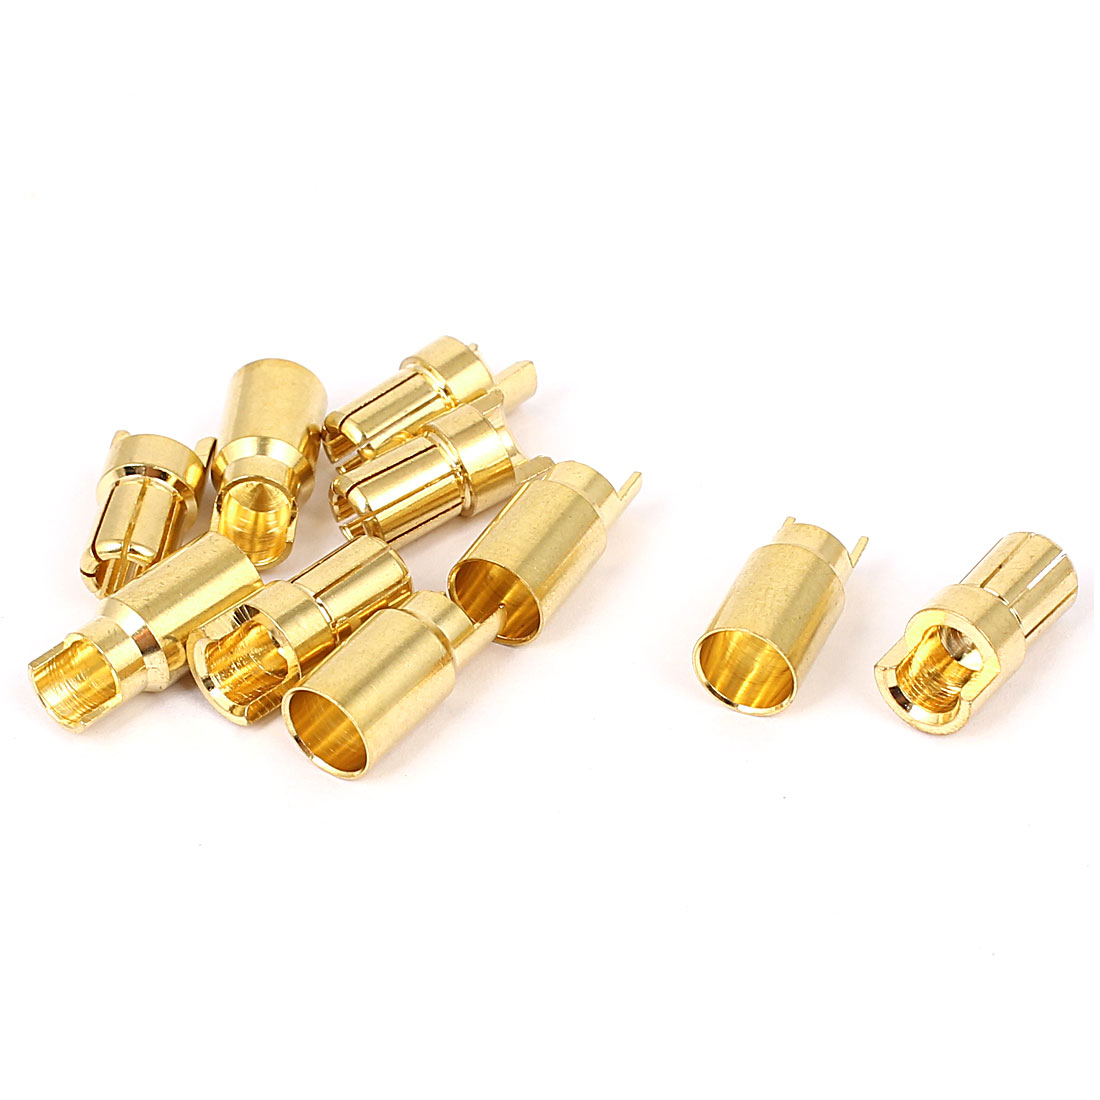 5 Pairs 6mm Gold Tone Metal Hemihedral Banana Female Male Connector for RC Helicopter